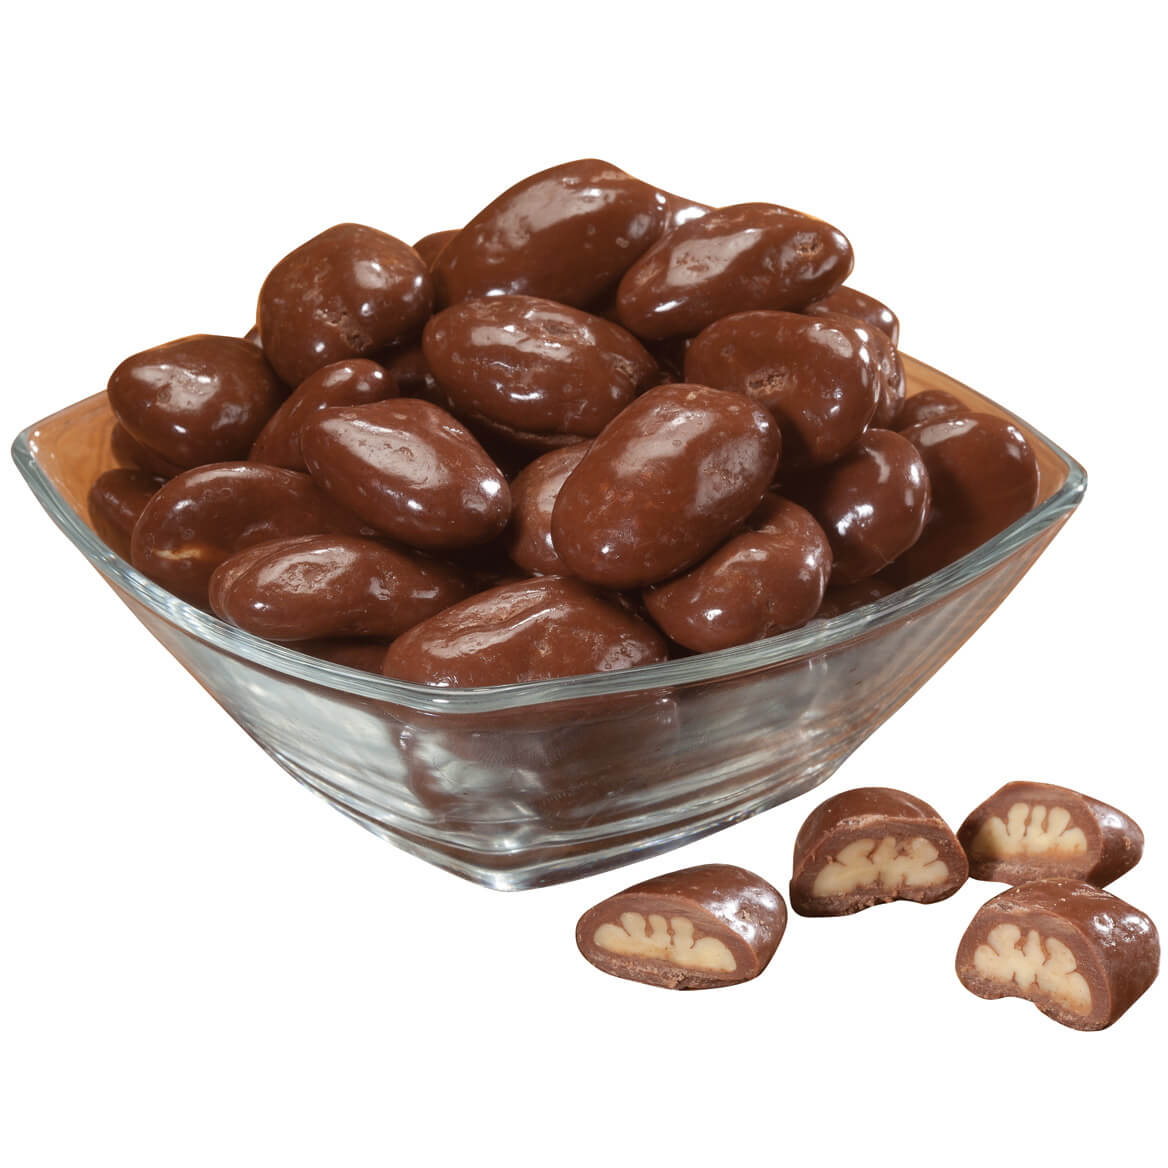 Milk Chocolate Grand Marnier Pecans, 8 oz.